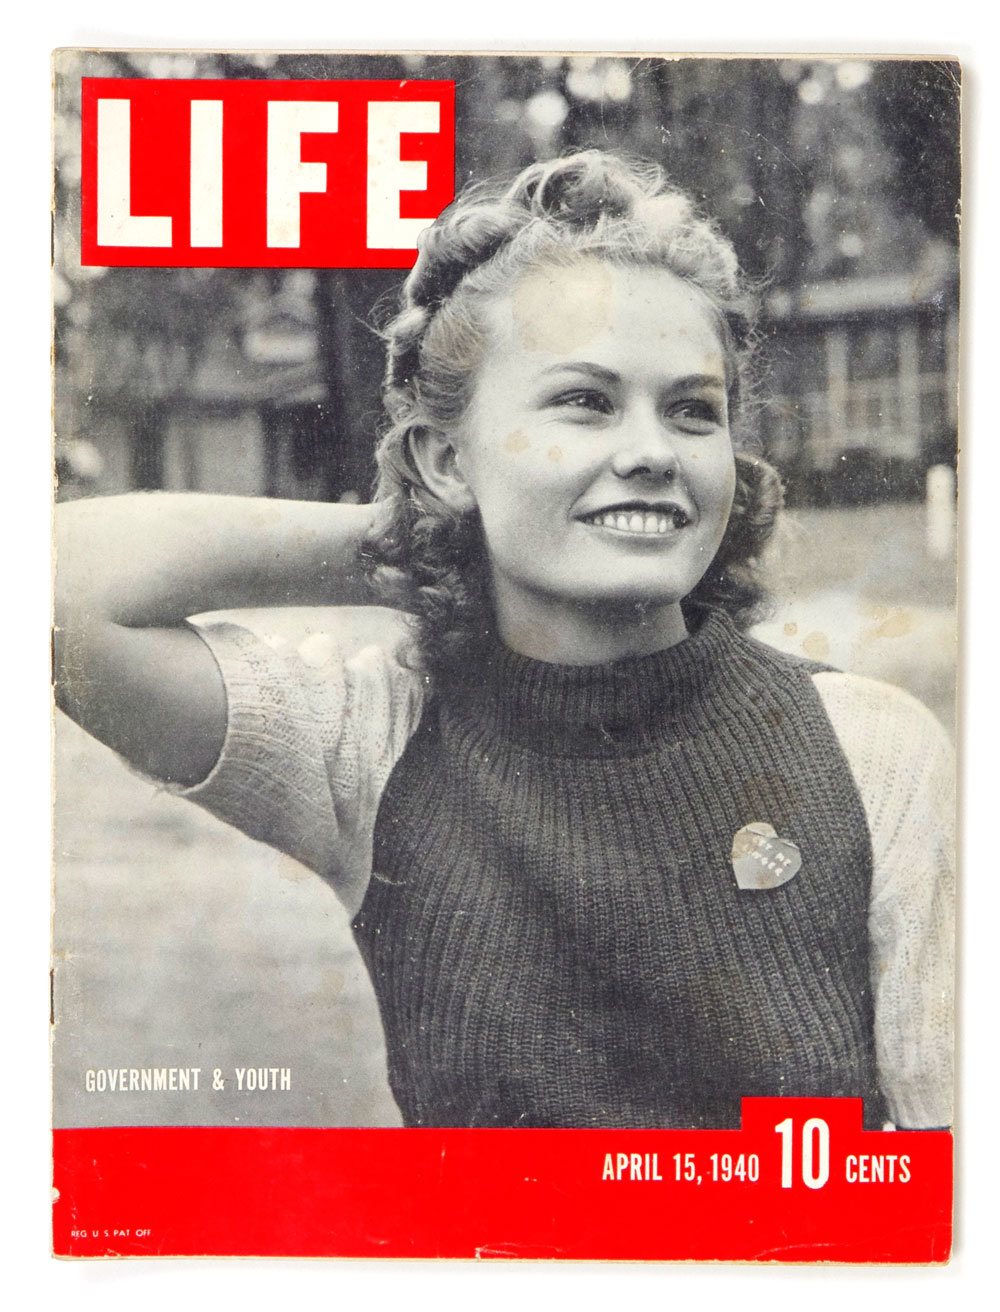 LIFE Magazine 1940 April 15 Government & Youth